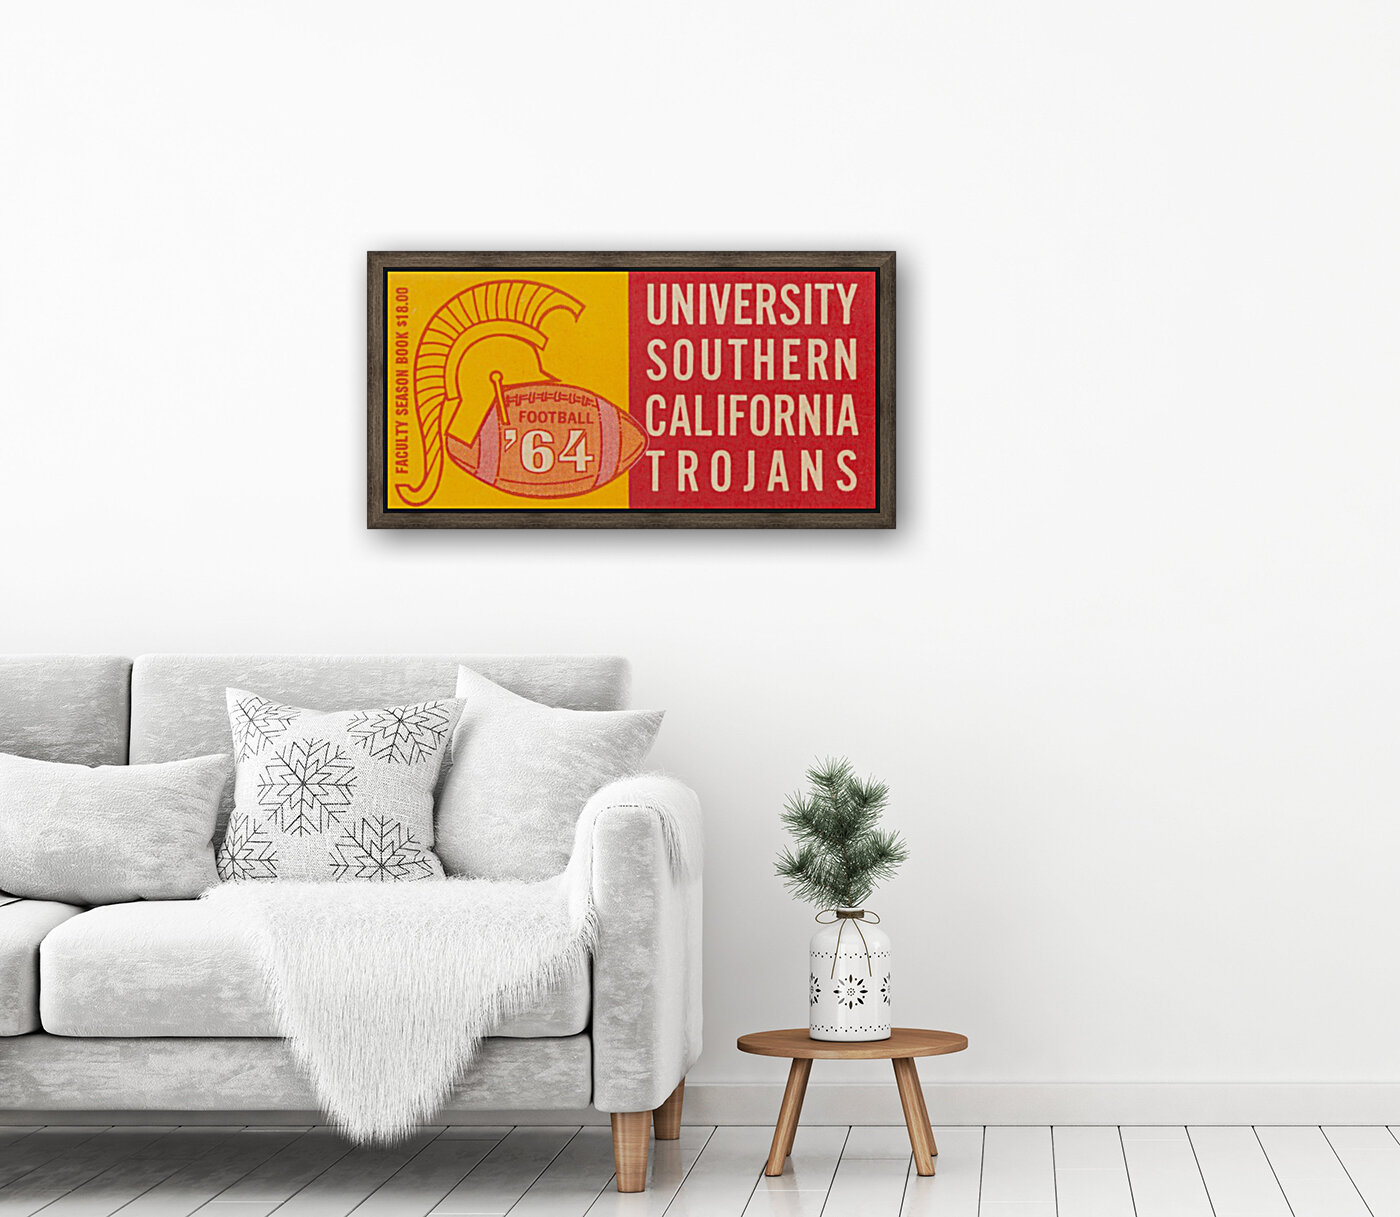 usc university of southern california trojans football art 1964 with Floating Frame